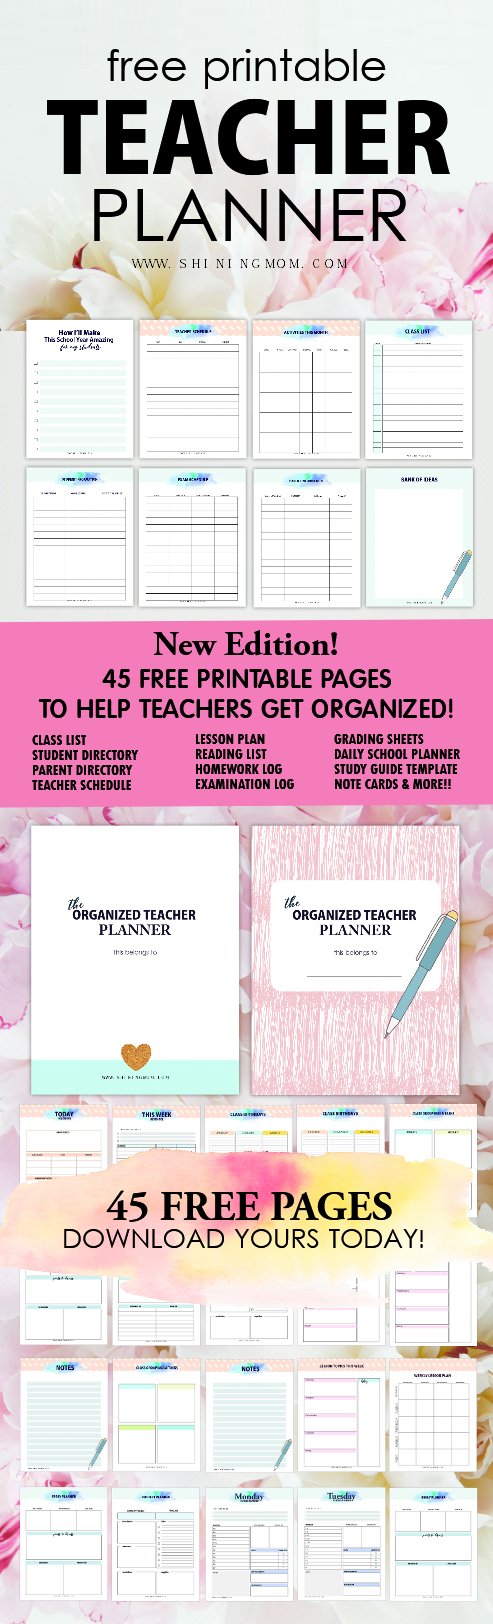 picture relating to Printable Student Planner Download referred to as Totally free Printable Trainer Planner: 45+ Faculty Preparing Templates!